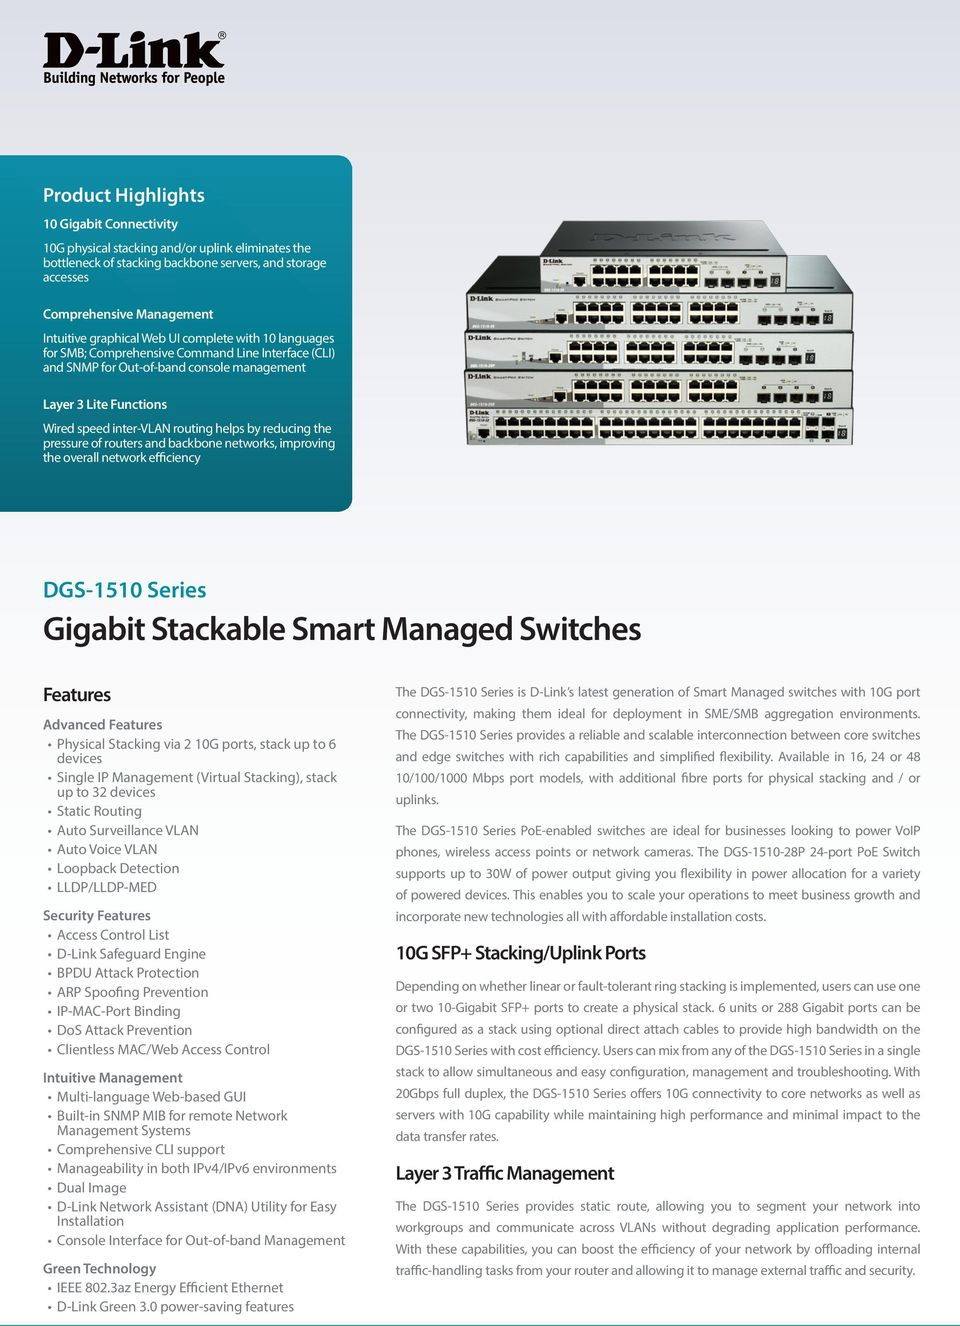 by reducing the pressure of routers and backbone networks, improving the overall network efficiency DGS-1510 Series Gigabit Stackable Smart Managed Switches Features Advanced Features Physical